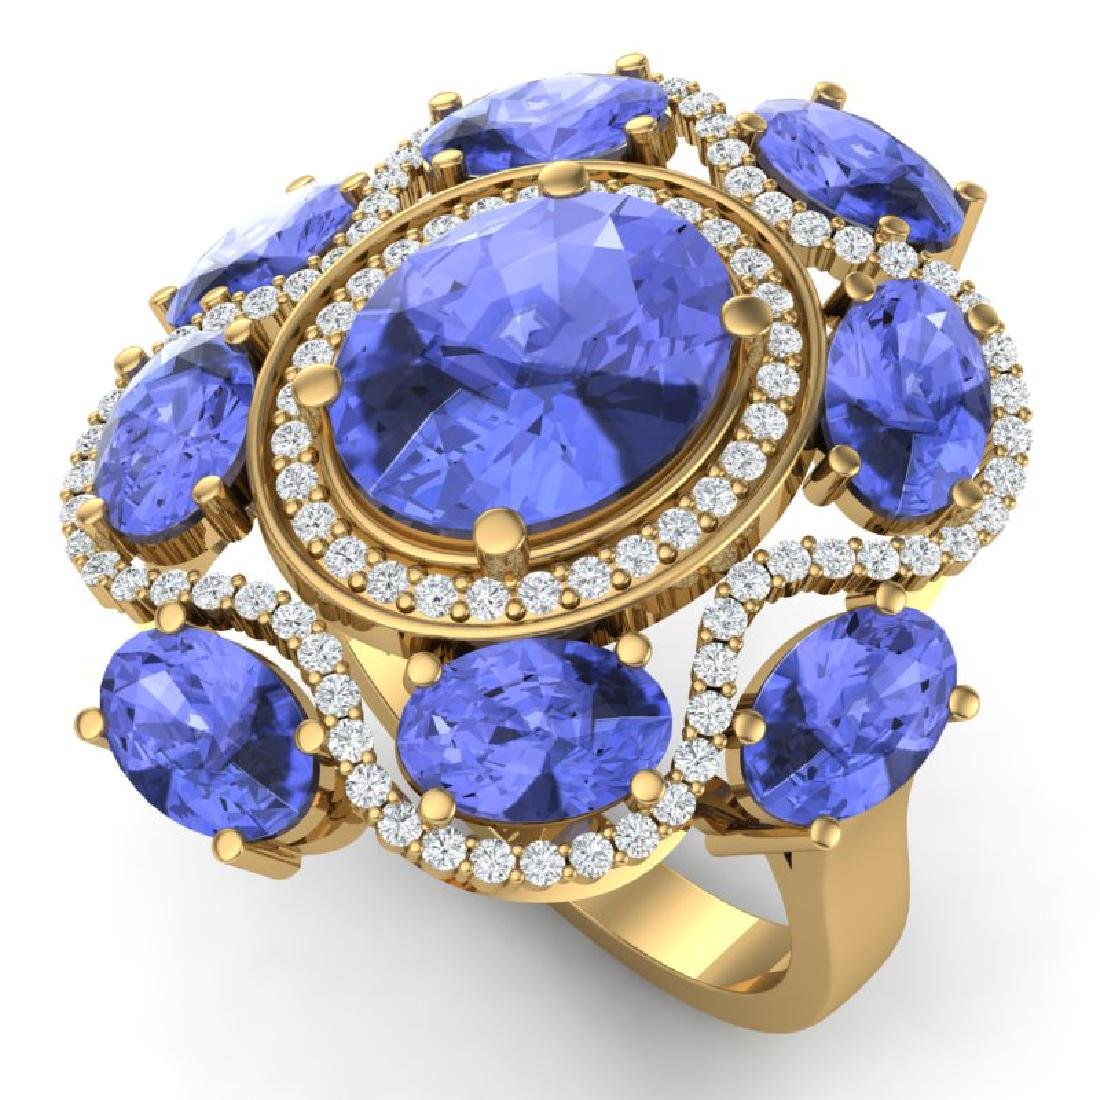 9.67 CTW Royalty Tanzanite & VS Diamond Ring 18K Yellow